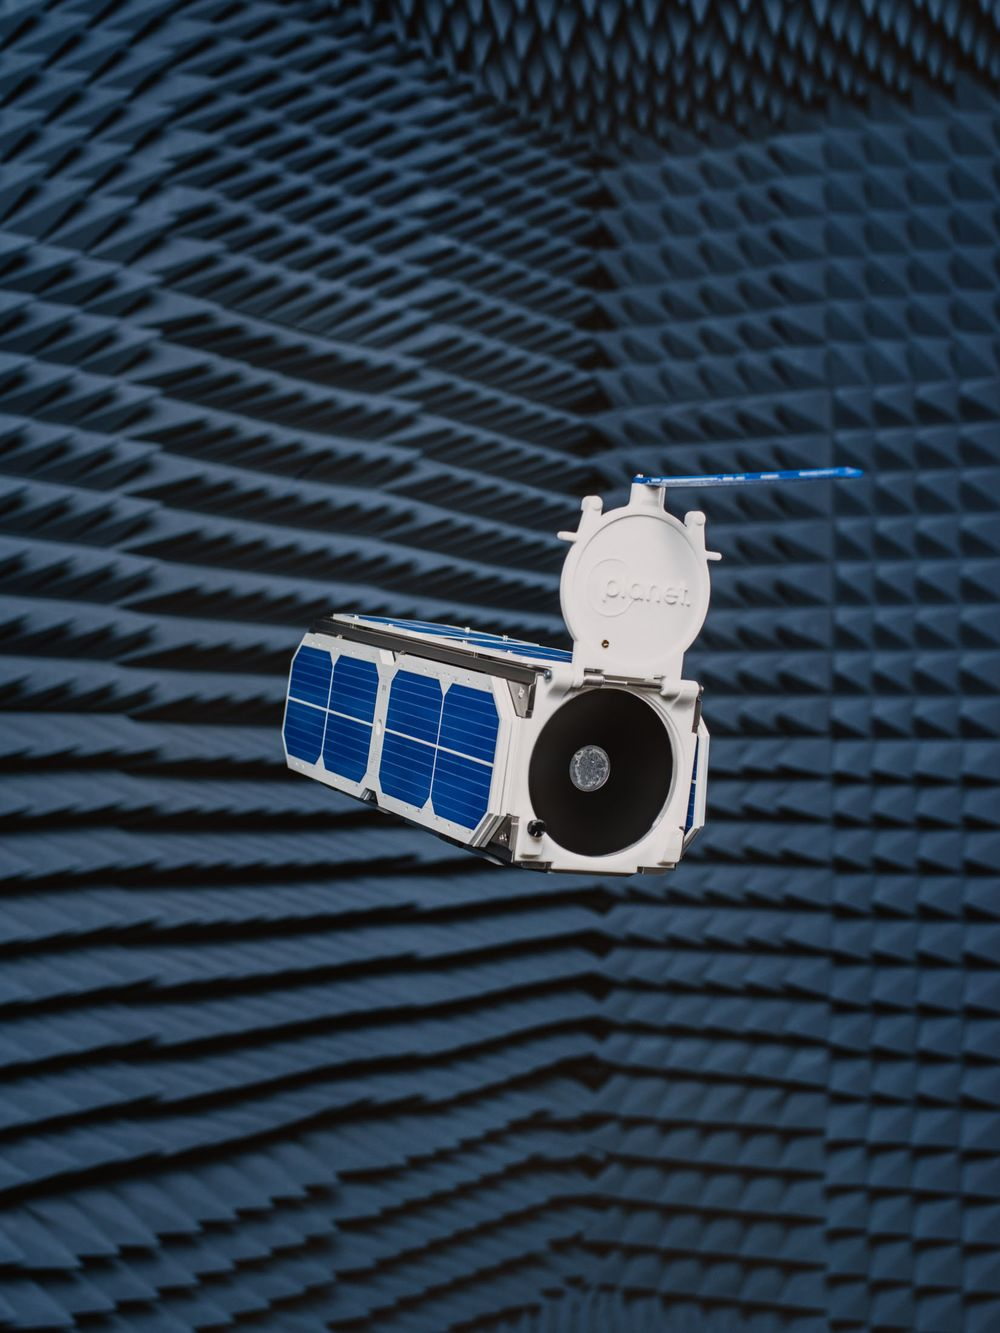 The Tiny Satellites Ushering in the New Space Revolution - Bloomberg